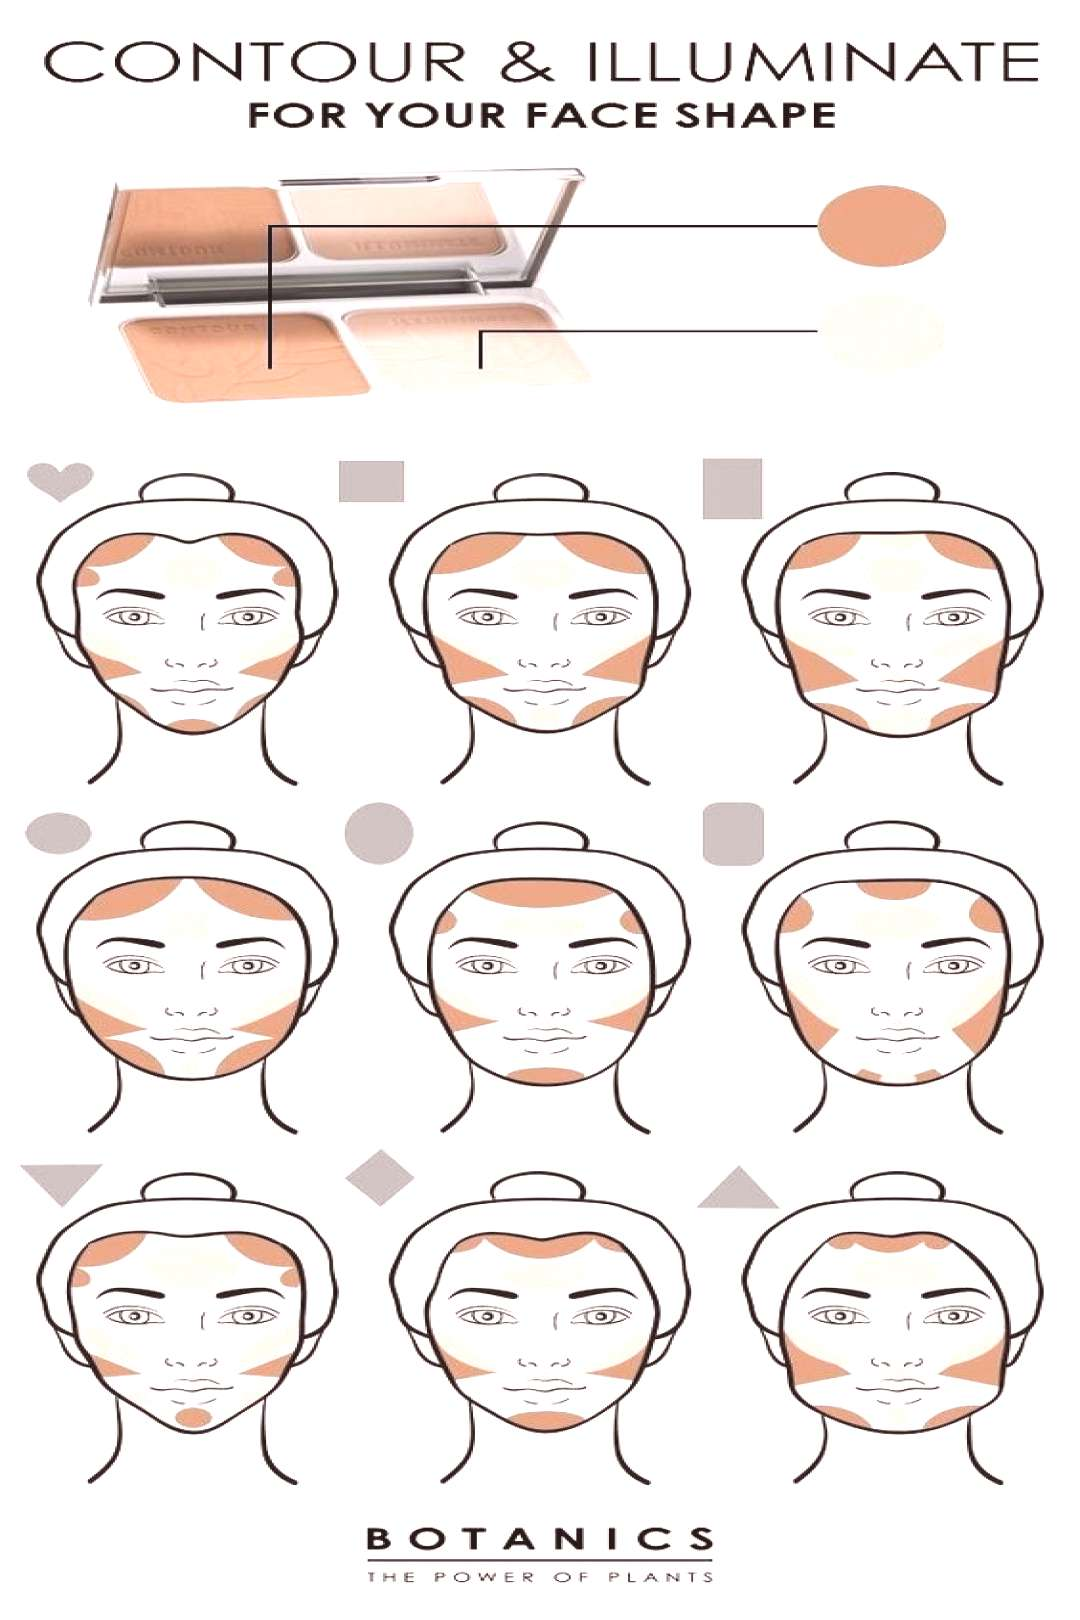 Contouring may seem scary for amateurs, but it doesn't have to be. This chart easily explains how